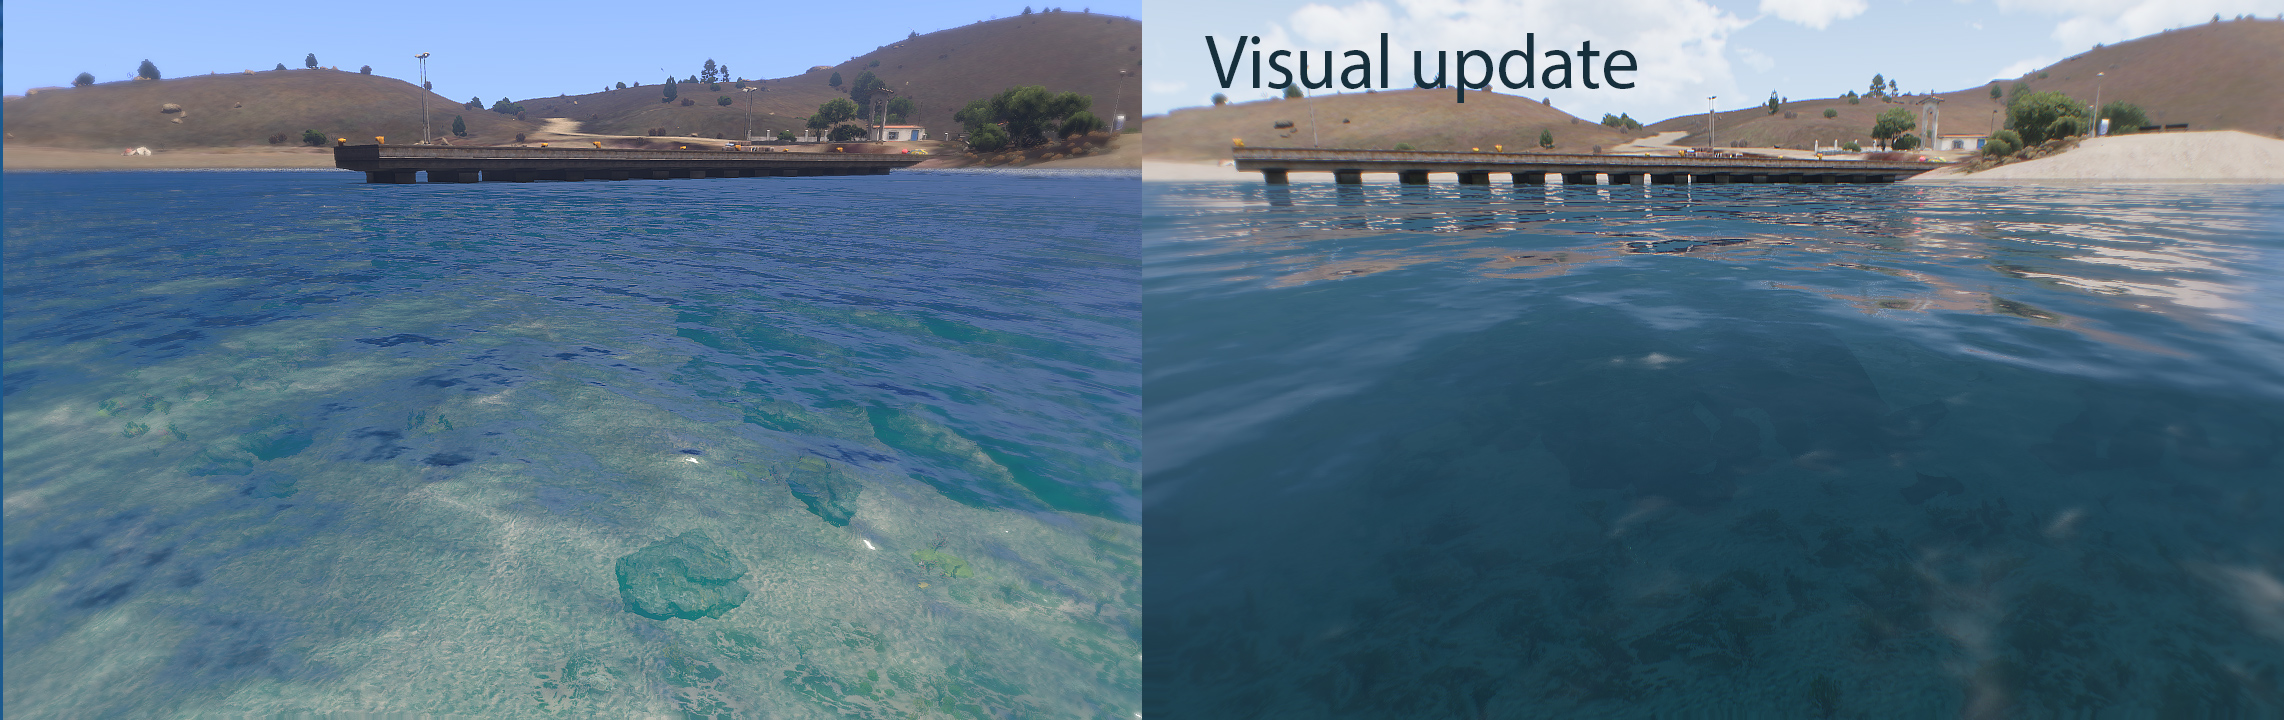 & OPREP - VISUAL UPGRADE | Dev Hub | Arma 3 azcodes.com